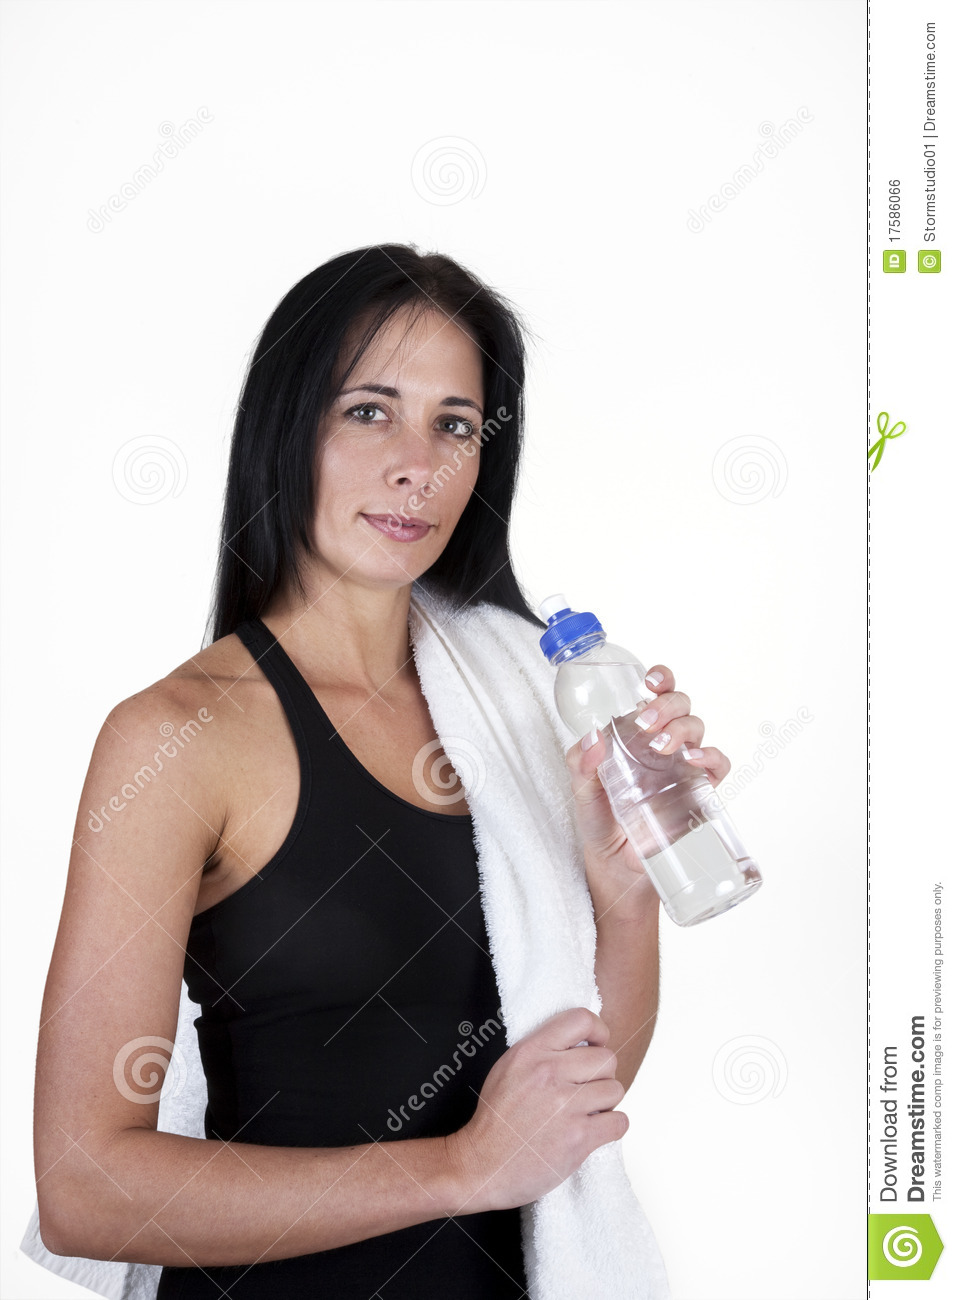 woman drinking bottled water royalty free stock image